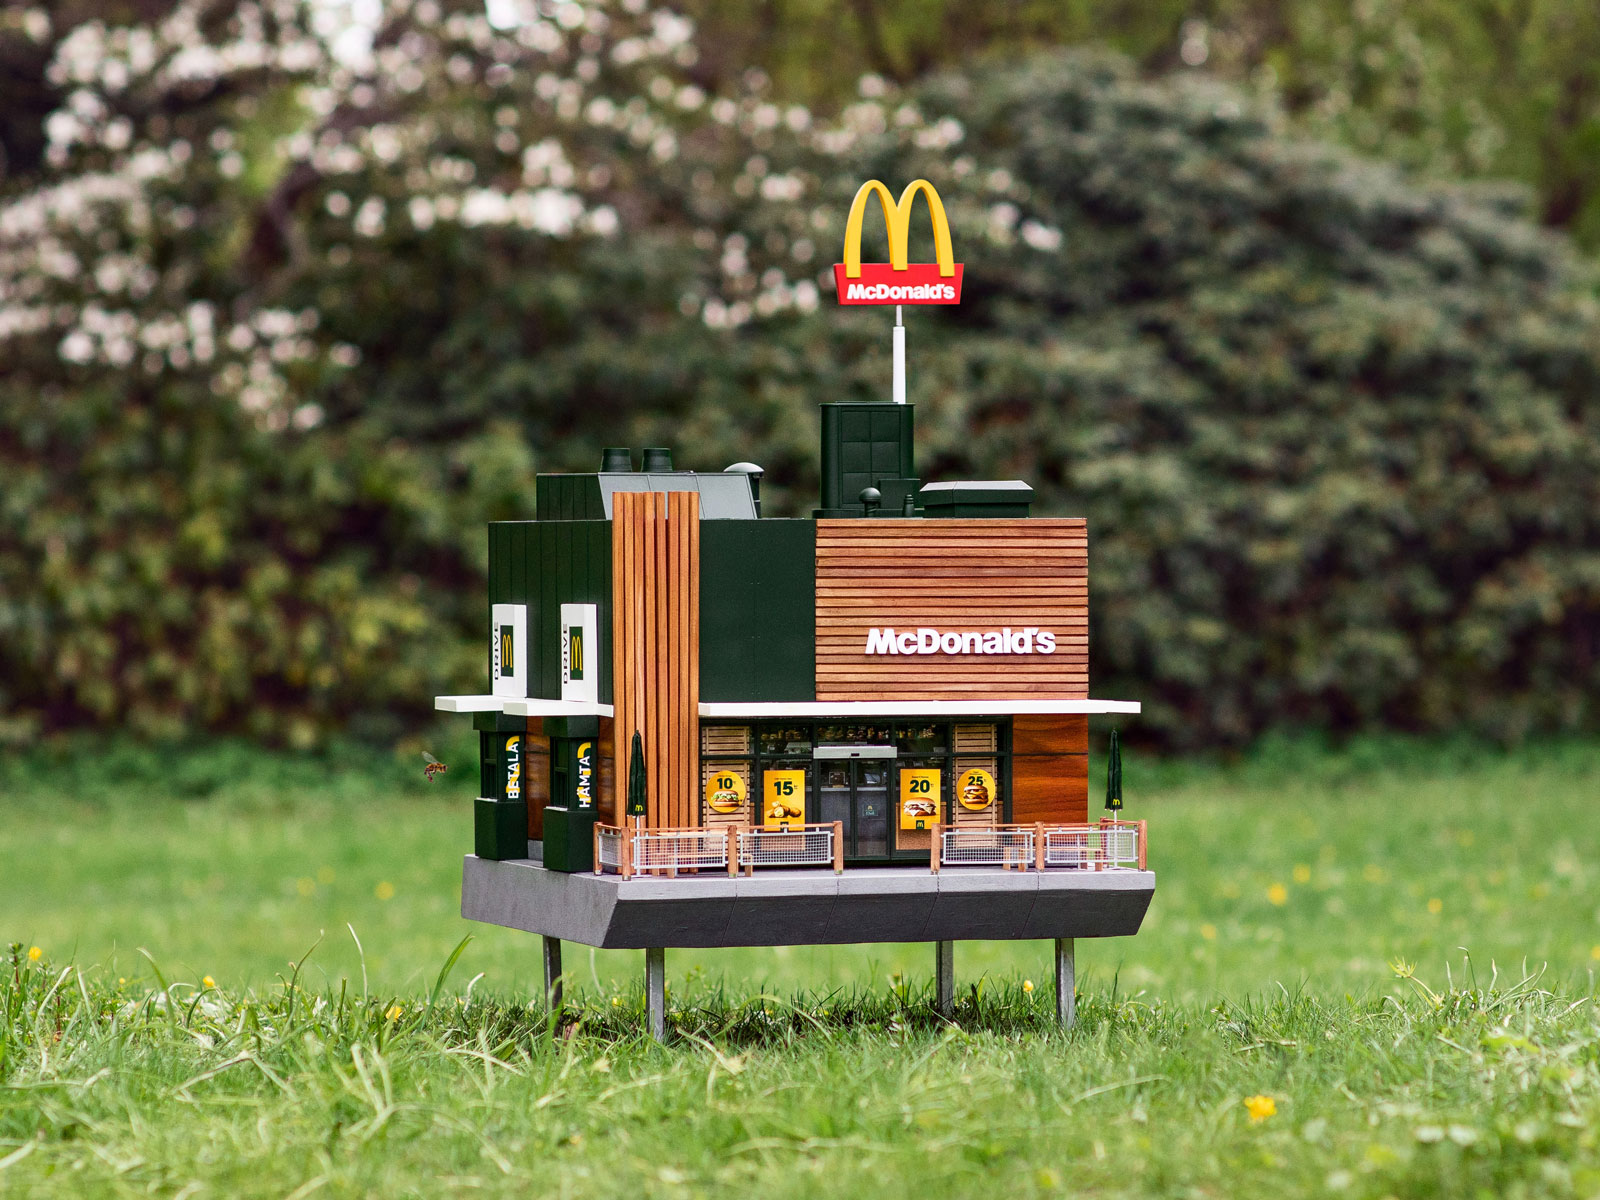 The 'World's Smallest McDonald's' Is Now Open—to Bees